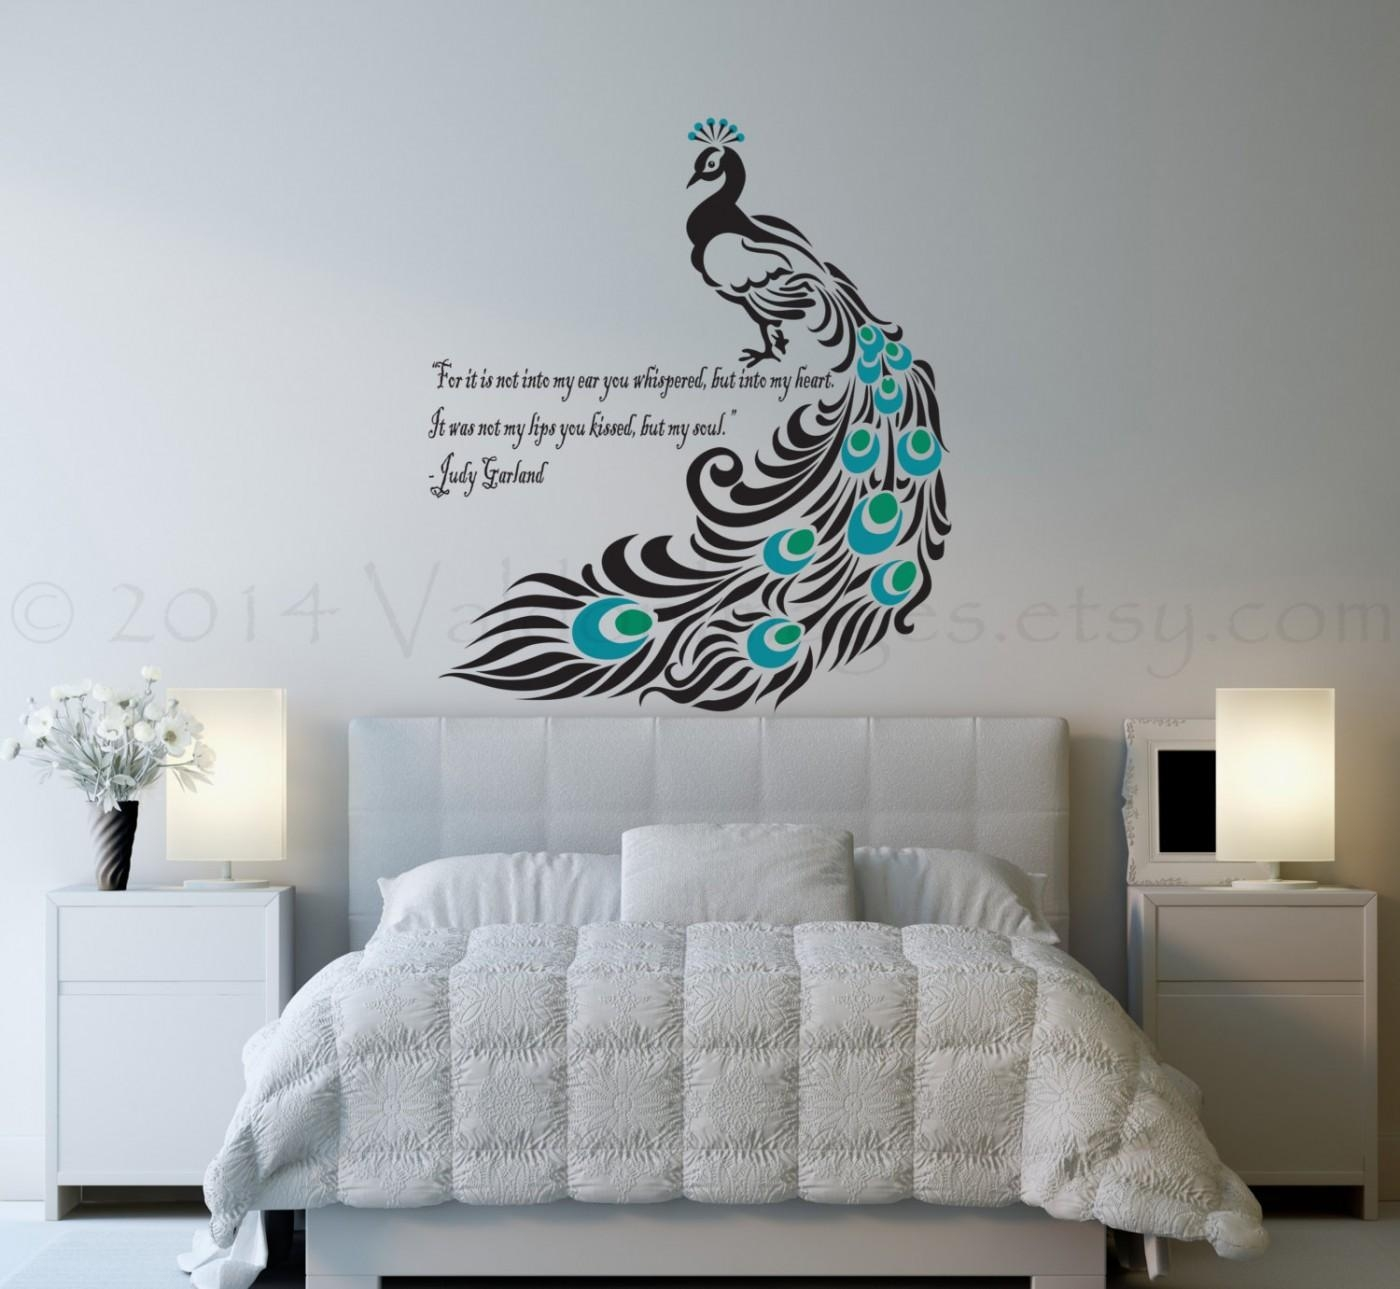 Stunning Wall Art For Bedrooms Ideas – Rugoingmyway Pertaining To Wall Art For Bedrooms (View 21 of 21)